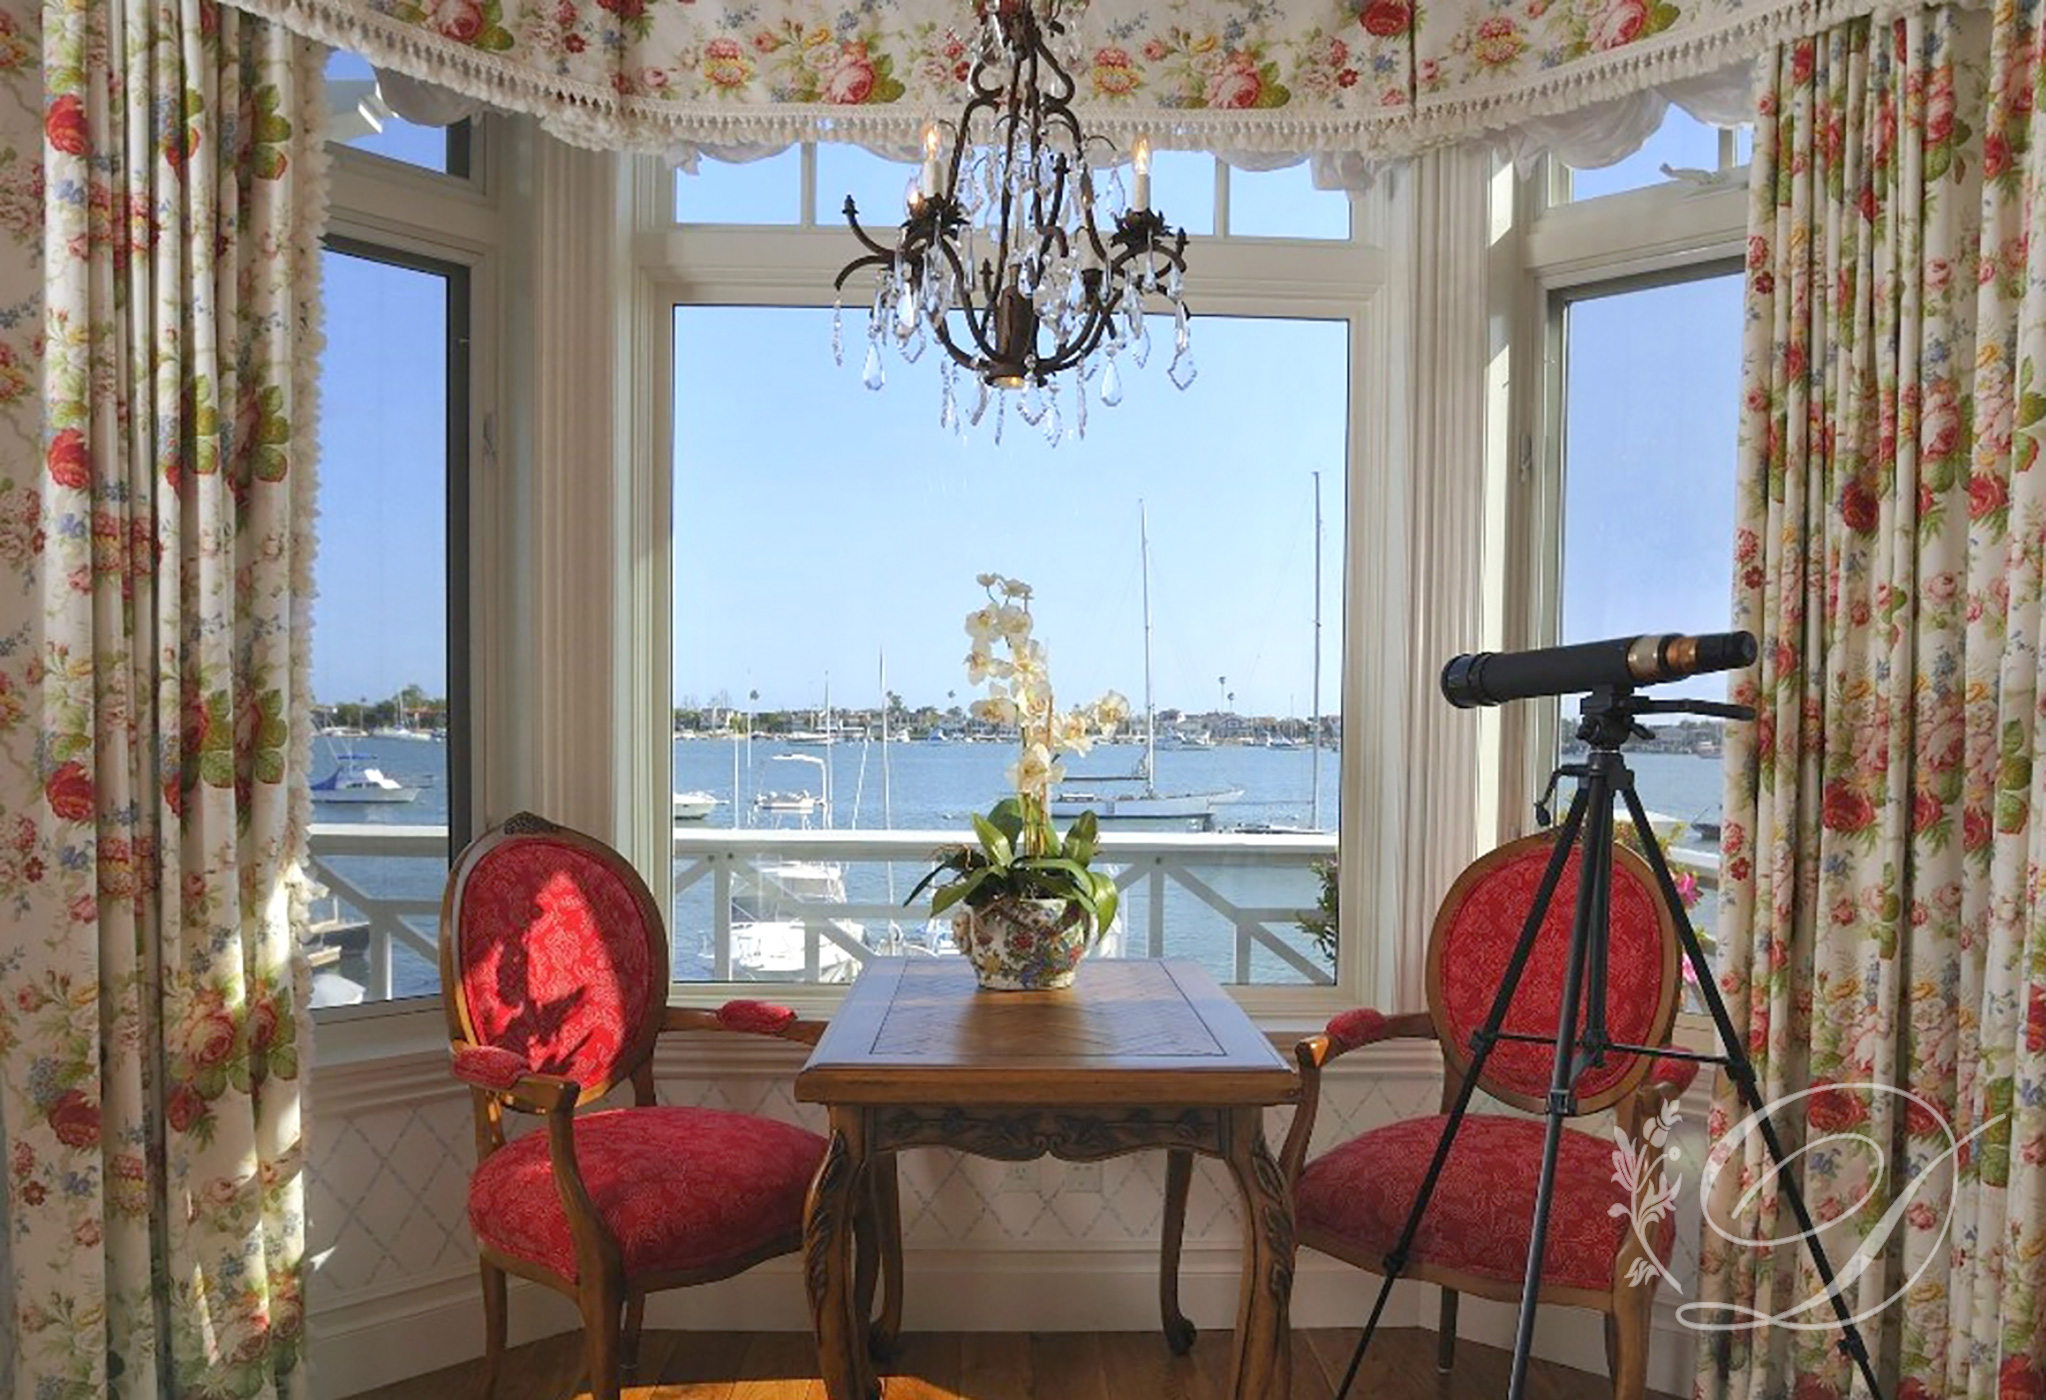 007_Newport_Bay-window